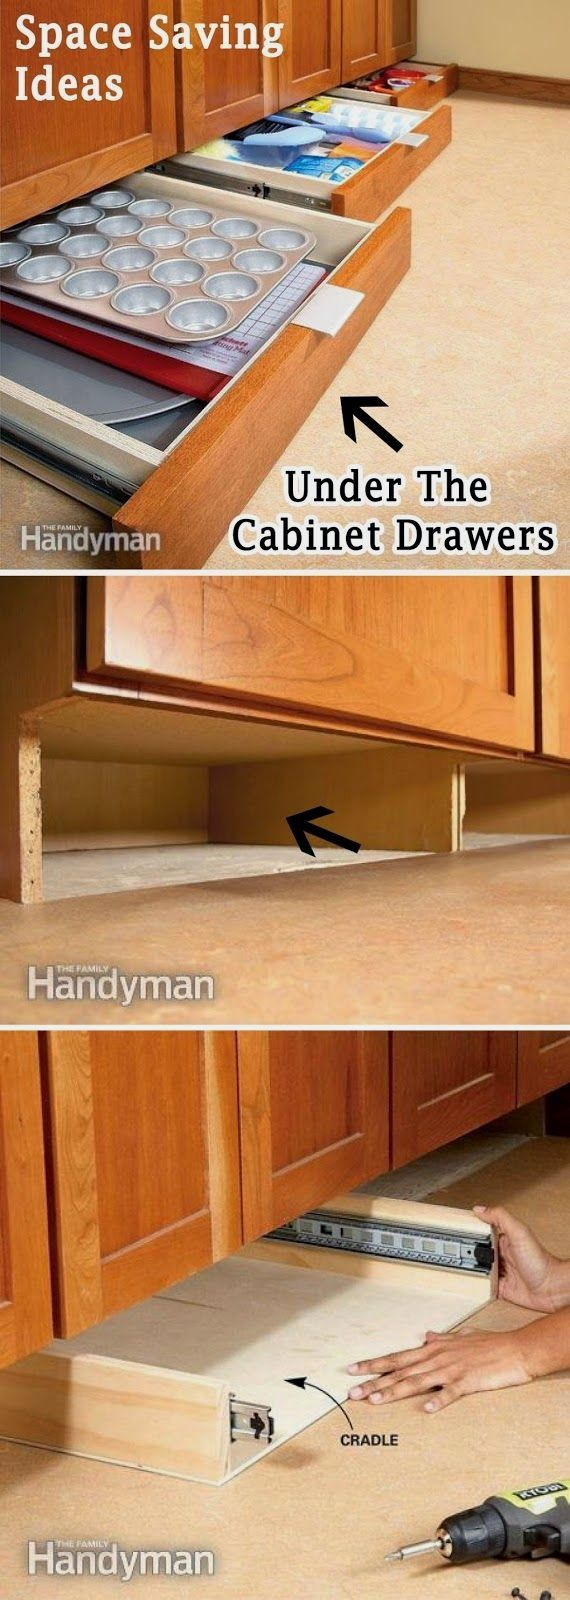 20 Creative And Clever Space Saving Ideas Home Remodeling Home Projects Kitchen Storage